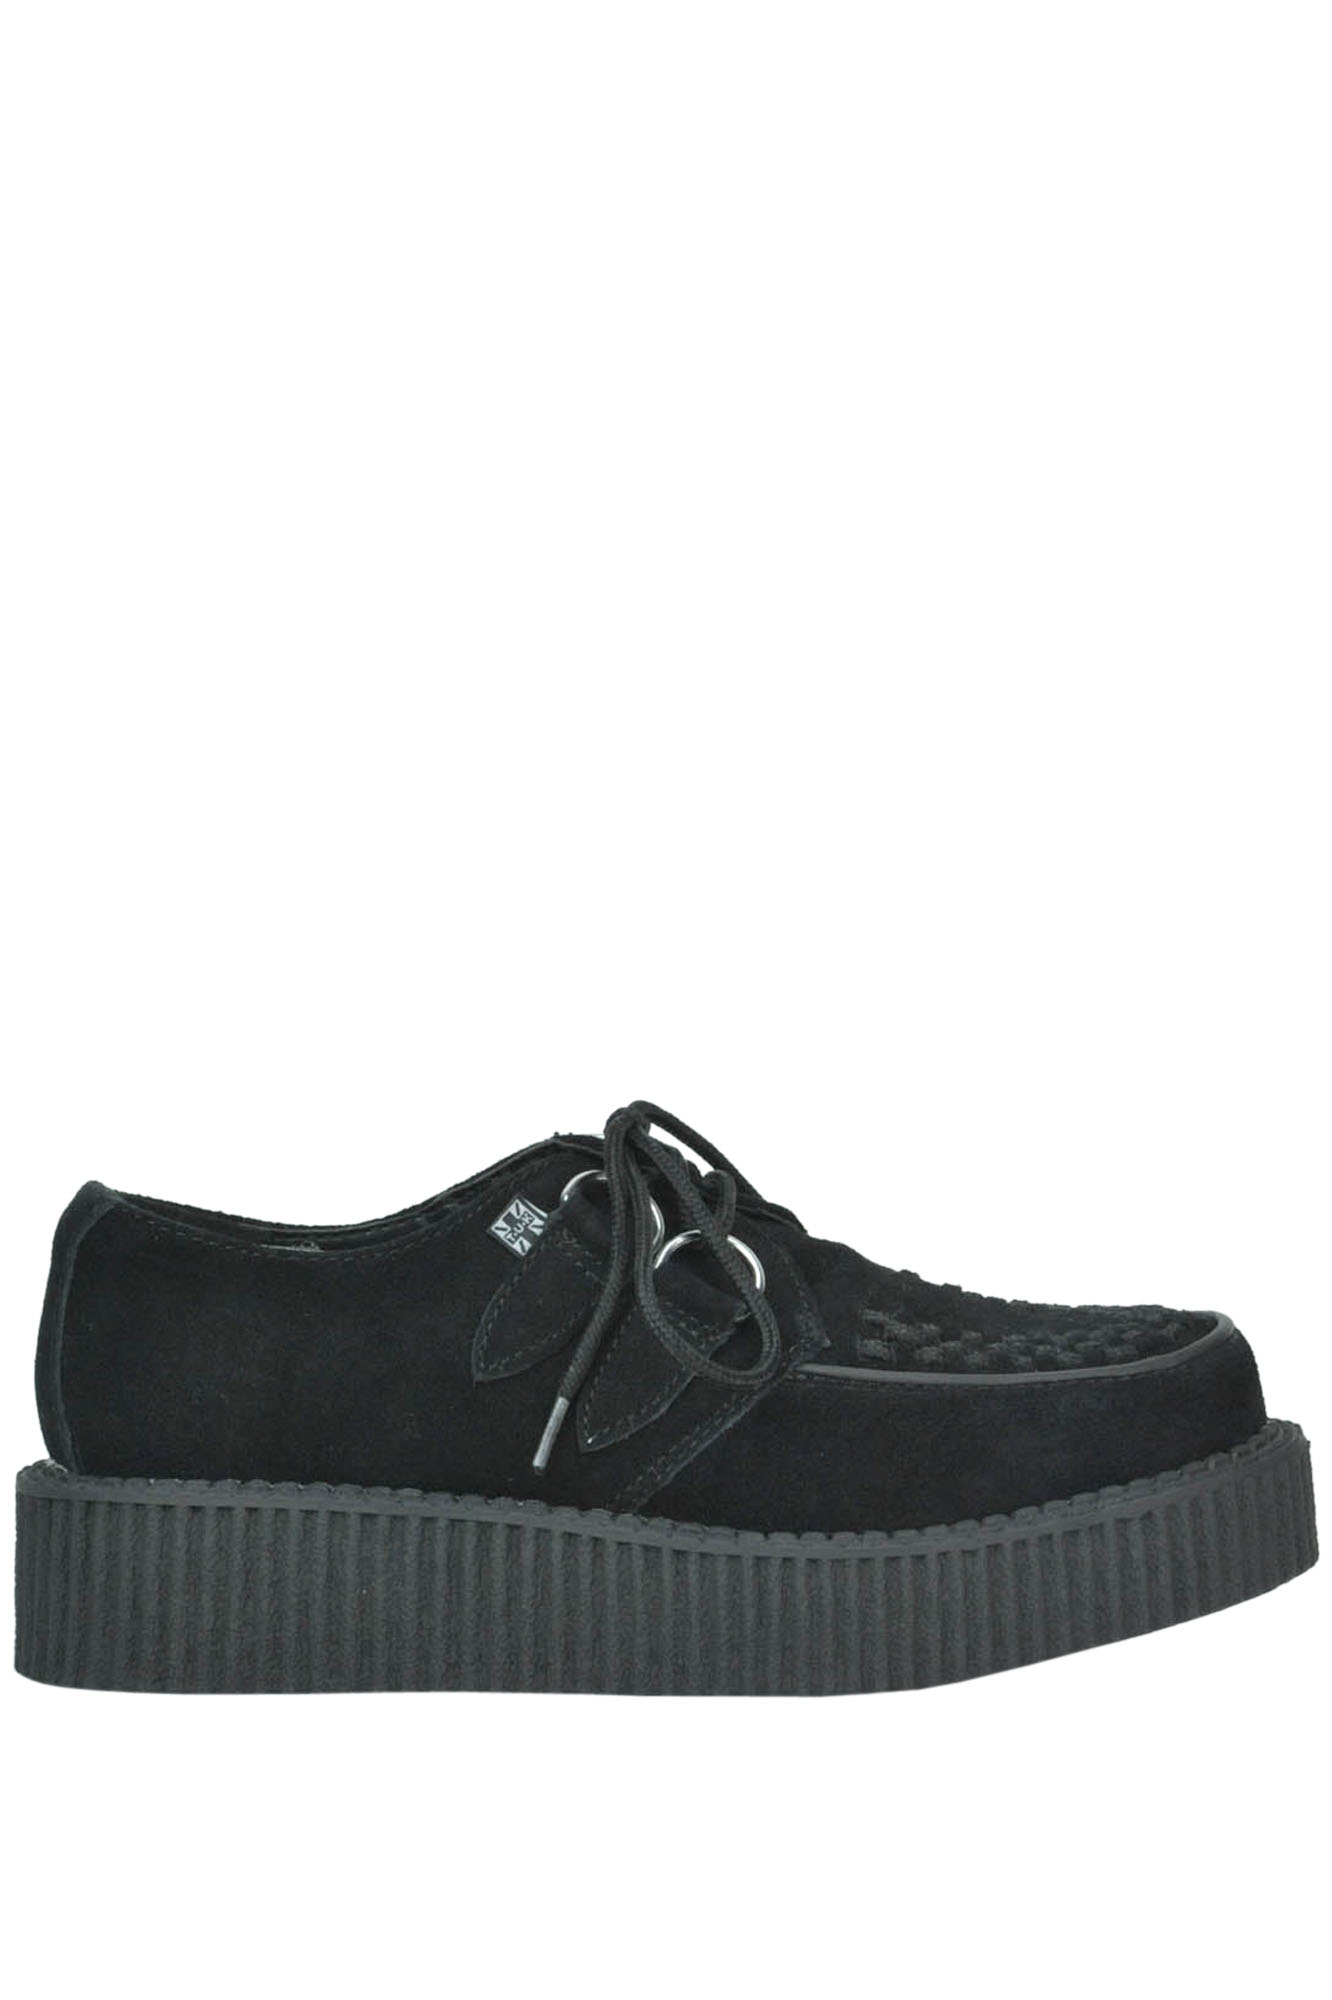 Image of Scarpe creepers in suede